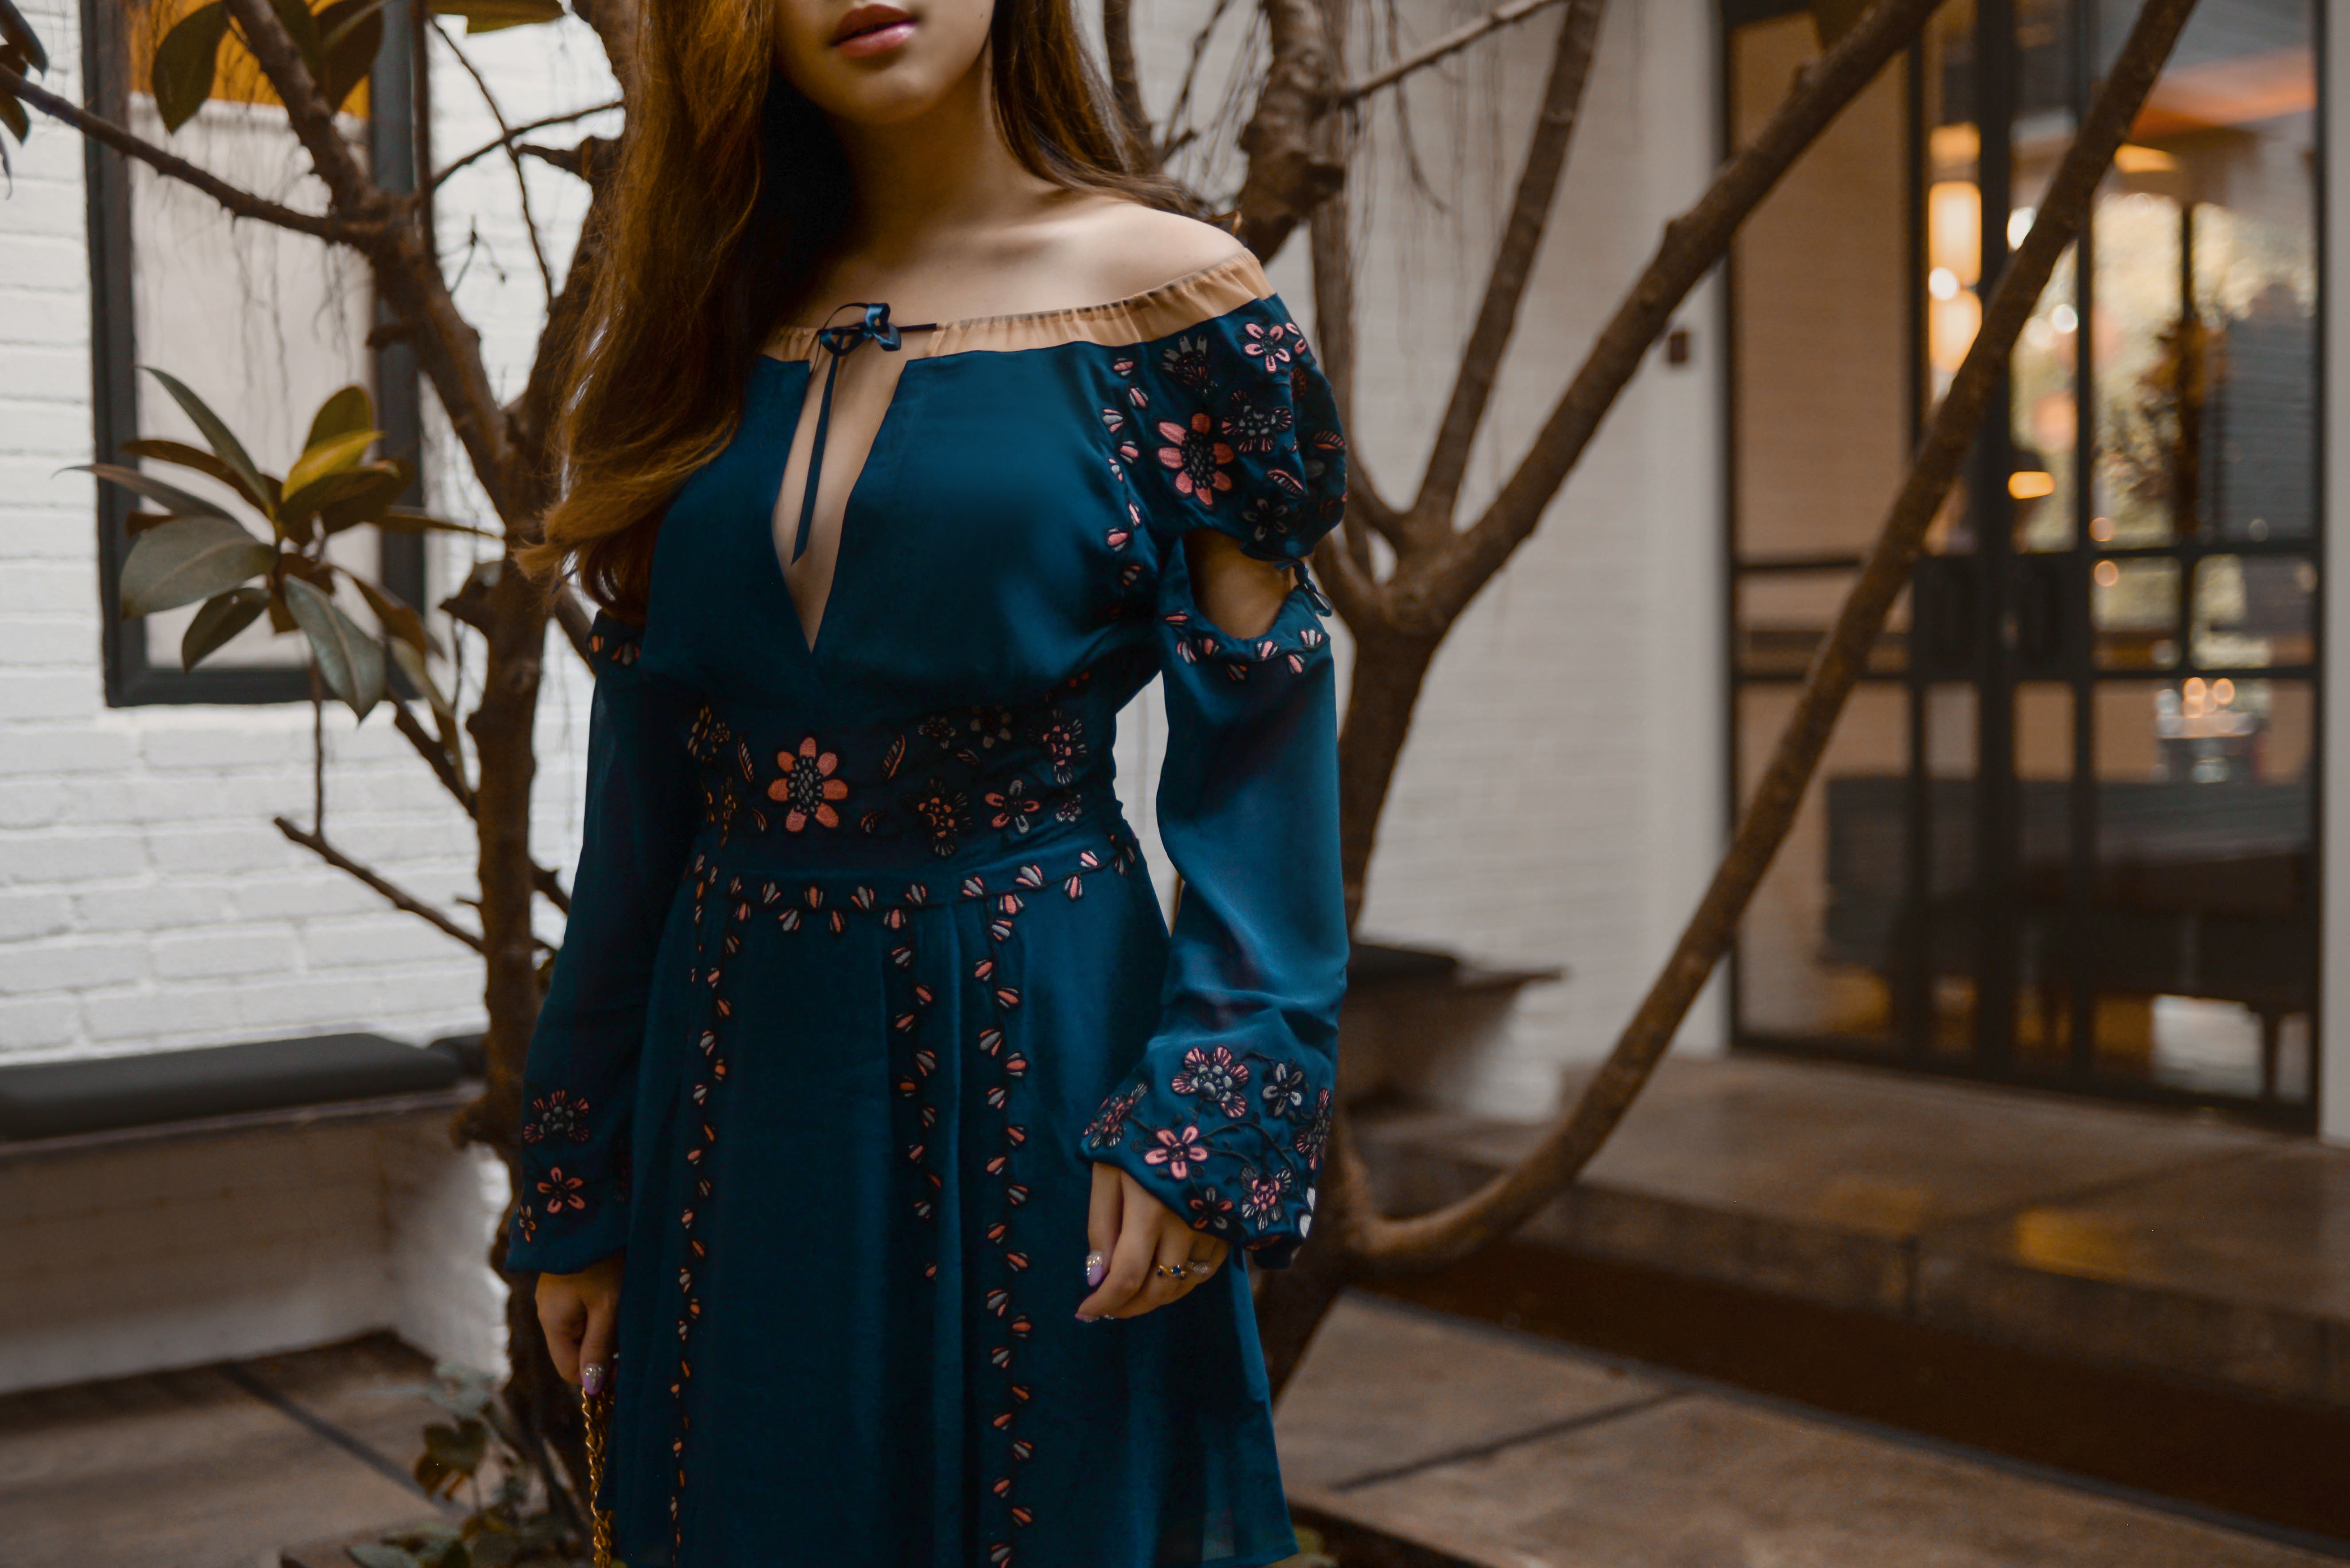 willabelle-ong-paledivision-street-style-fashion-travel-lifestyle-blog-singapore-australia-outfit-editorial-revolve-forloveandlemons-niccola-mini-dress-navy-floral-sheer